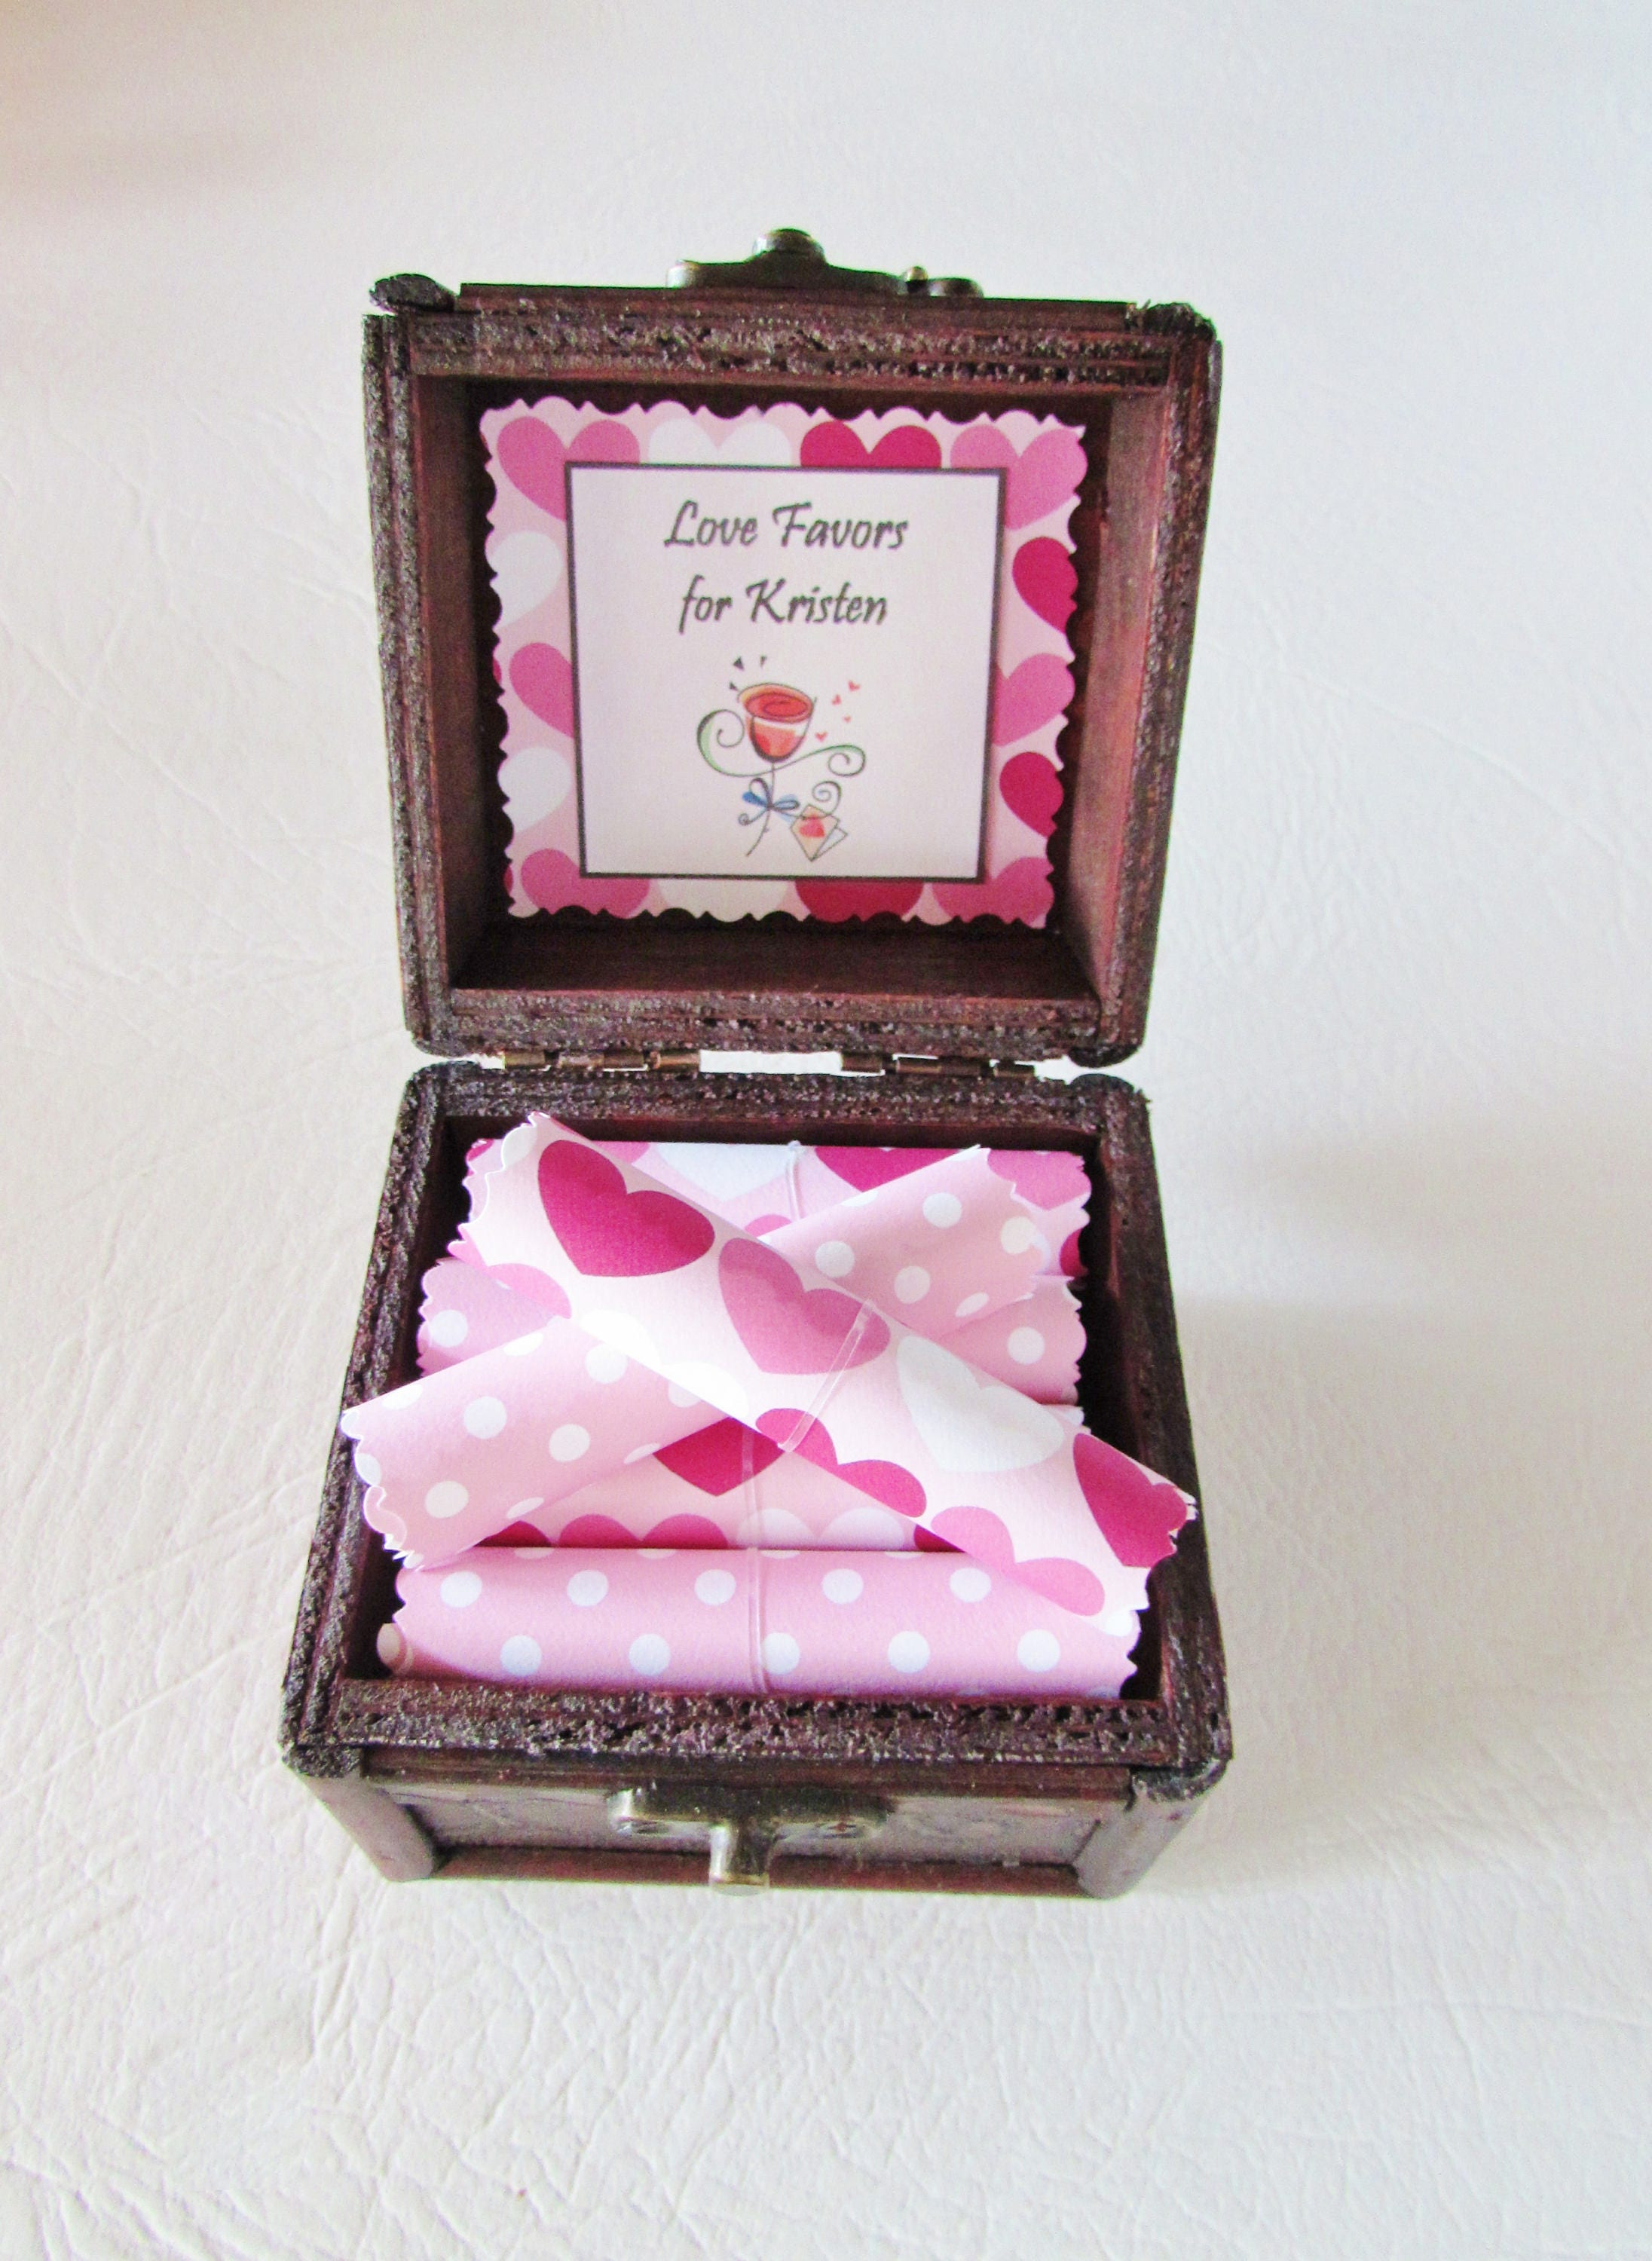 Wife Birthday Anniversary Gift Girlfriend Love Favors Romantic Box Of Romance Christmas